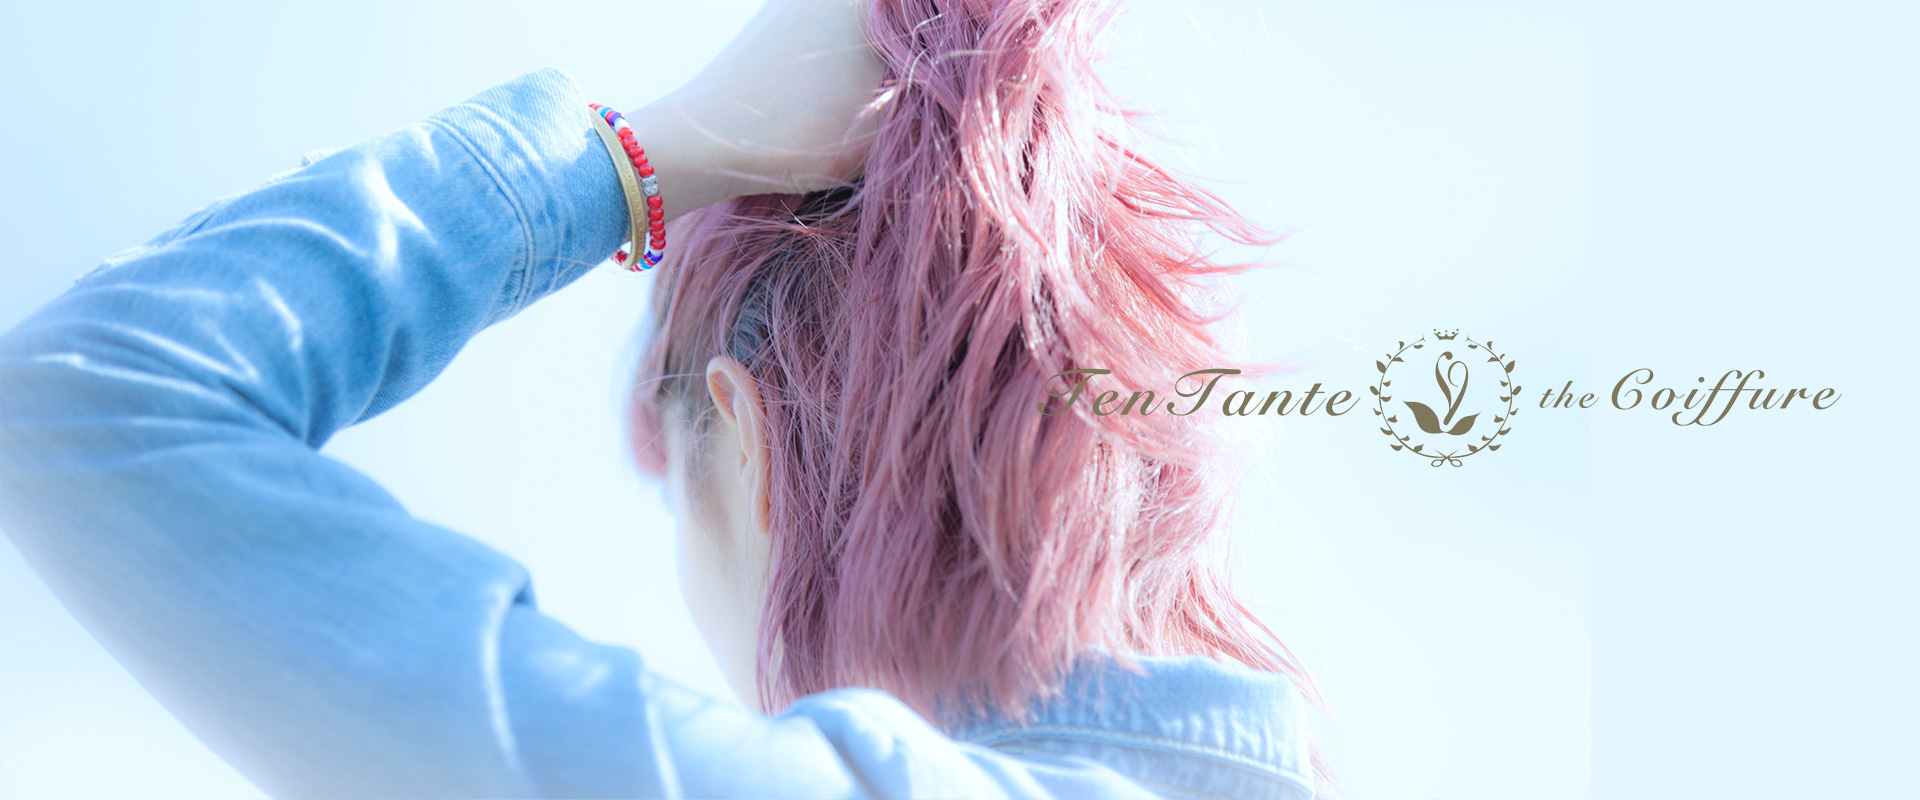 Ten Tante the Coiffure